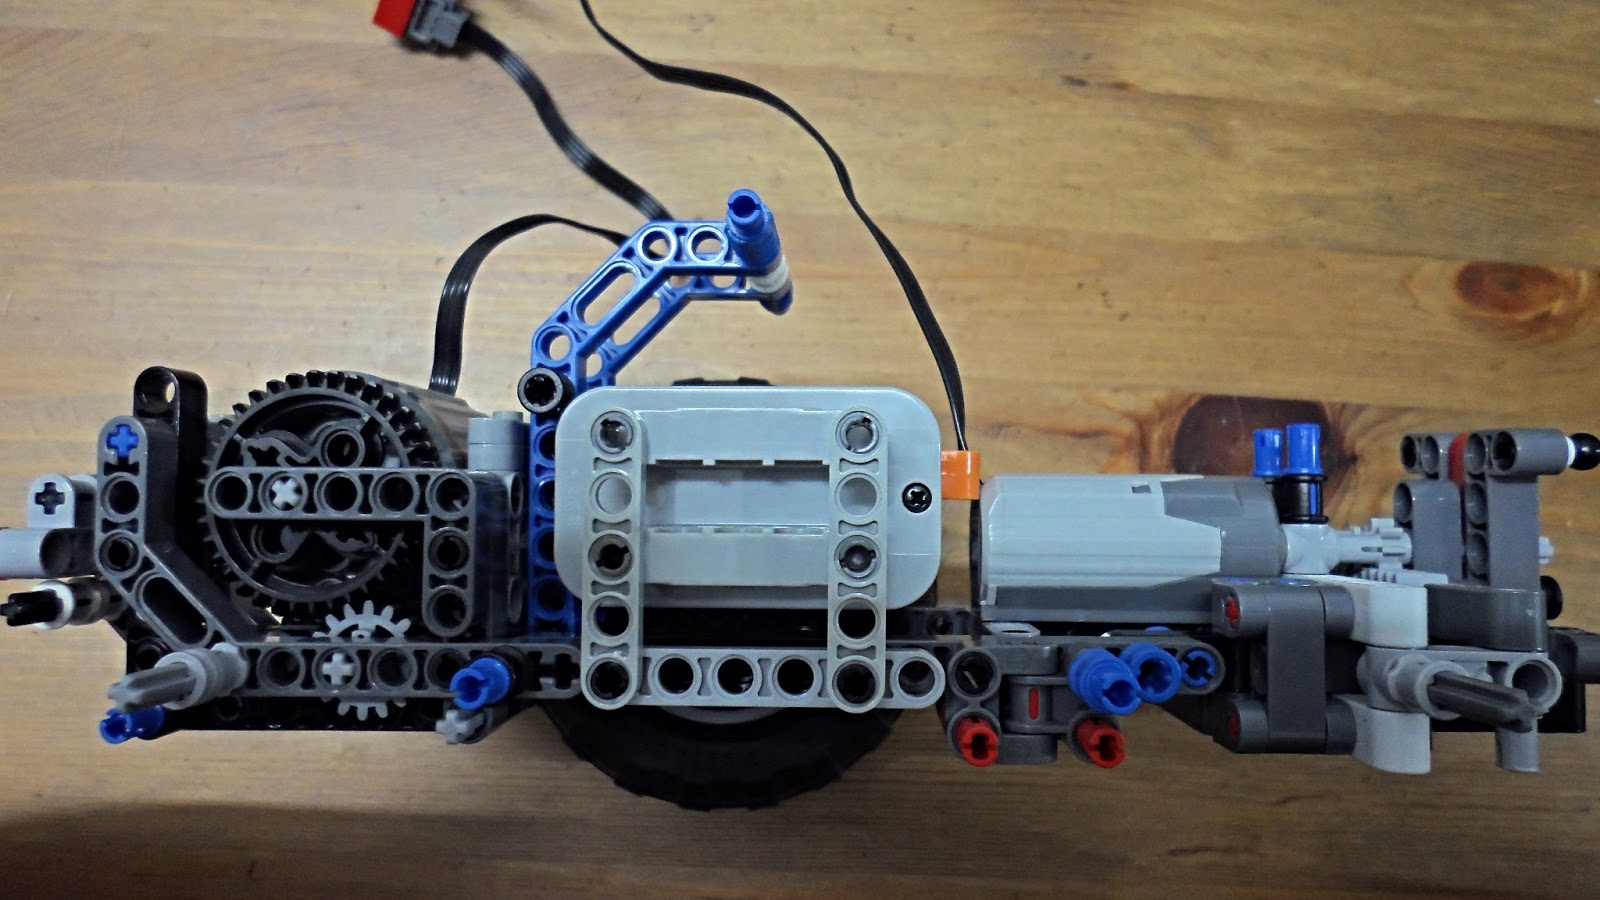 Lego Mindstorms And Technics Scene In Malaysia Technic Wiring Harness 1 225 Ratio From Motor To Intermediate Axle